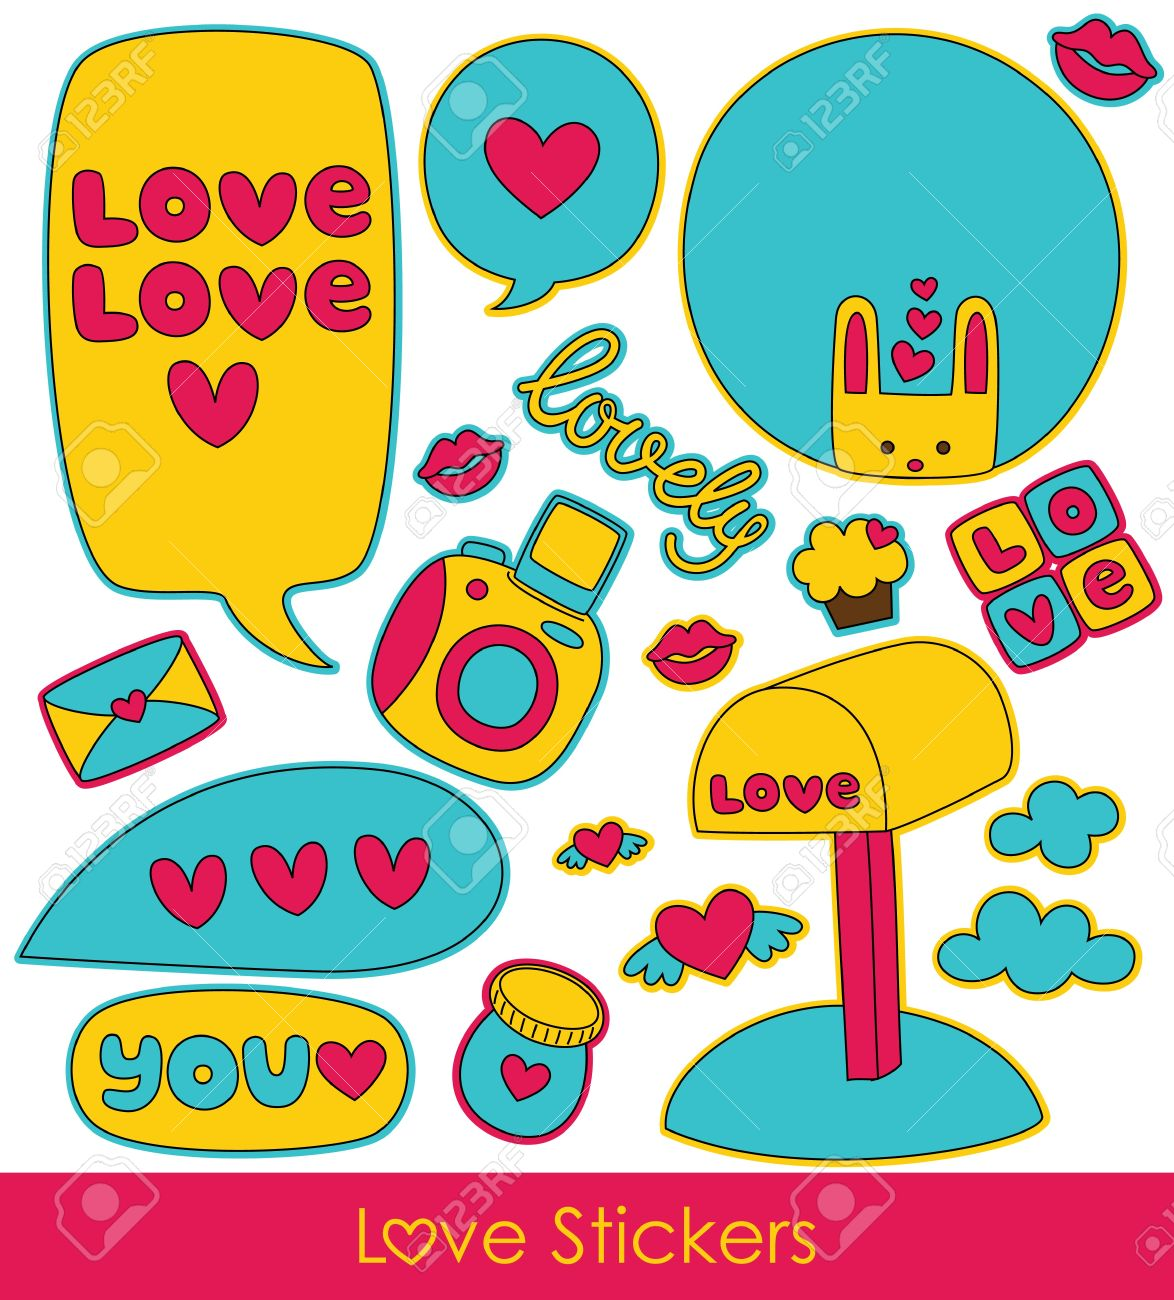 Love Stickers Collection Vector Illustration Stock